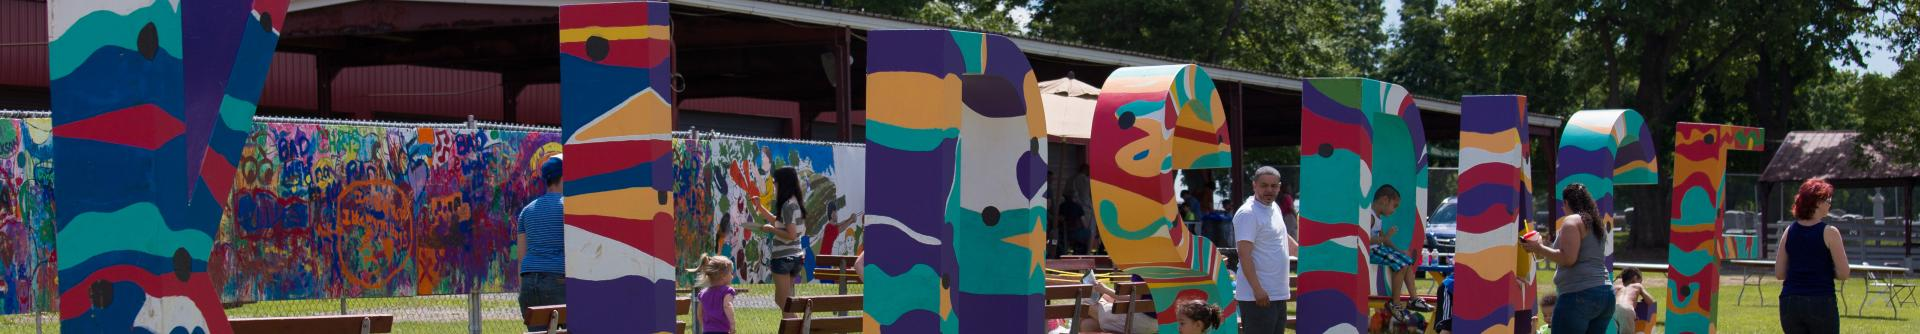 An installation at Mayfair Festival for the Arts